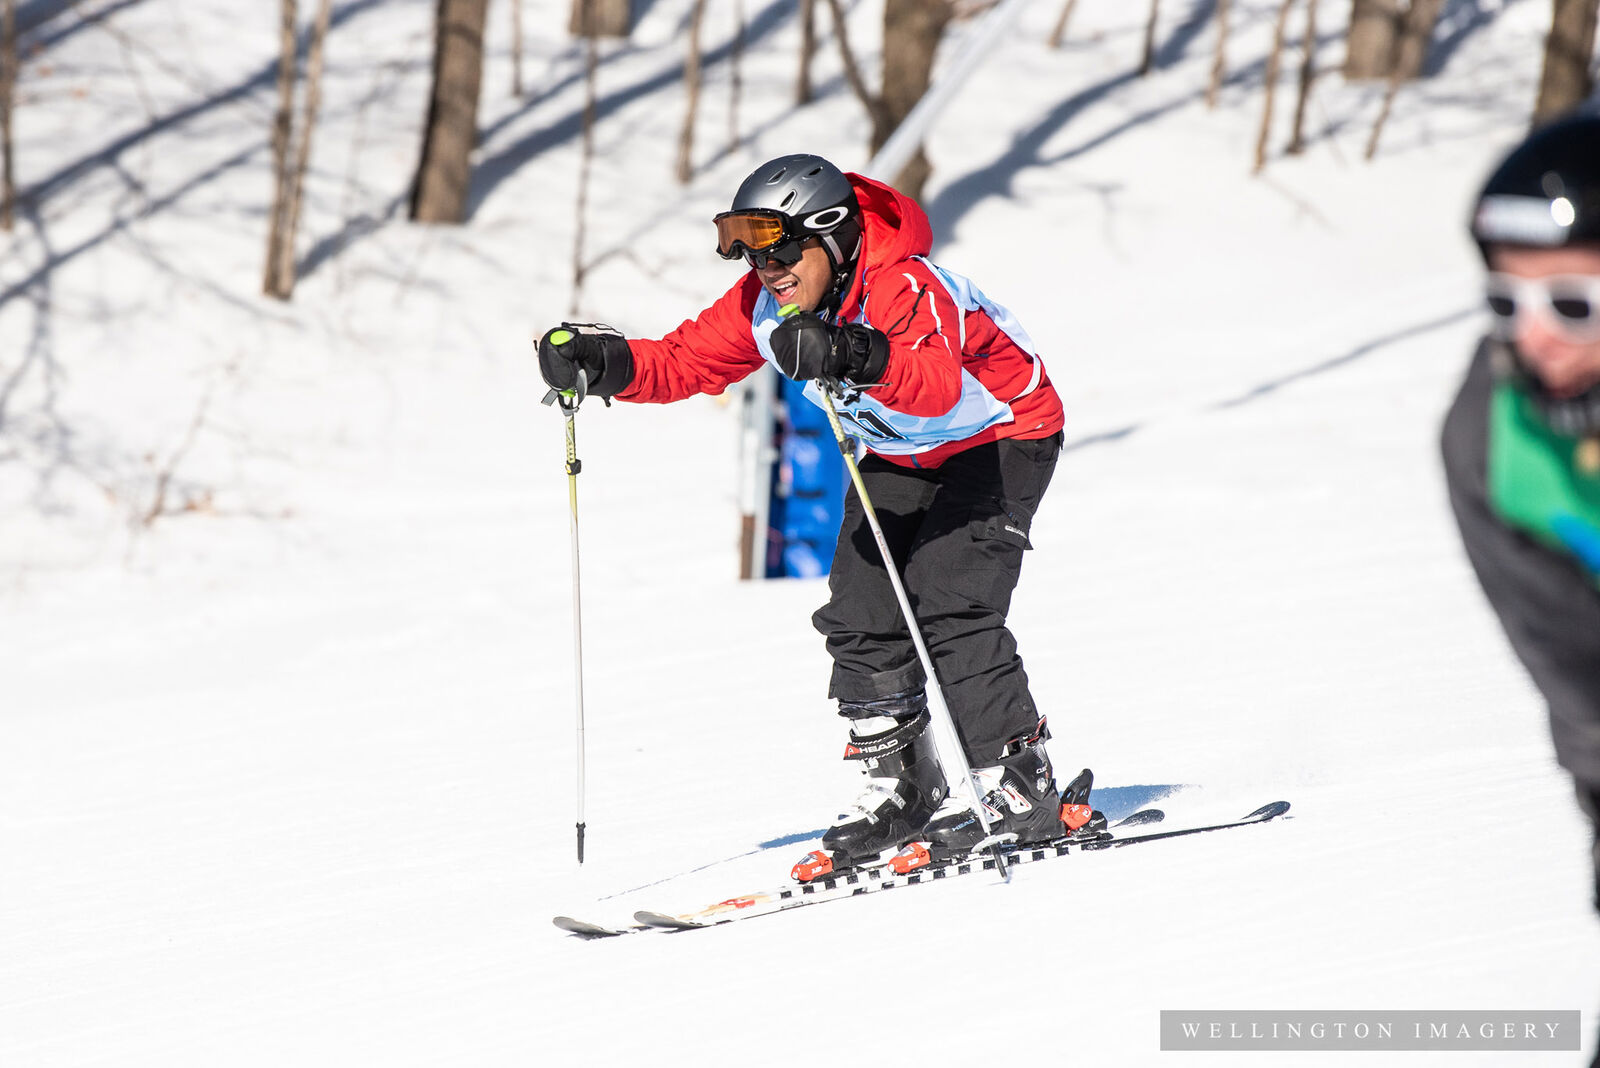 ©WELLINGTONIMAGERY 20190228 143624 BGCO Skiathon 1756 WM 2048px